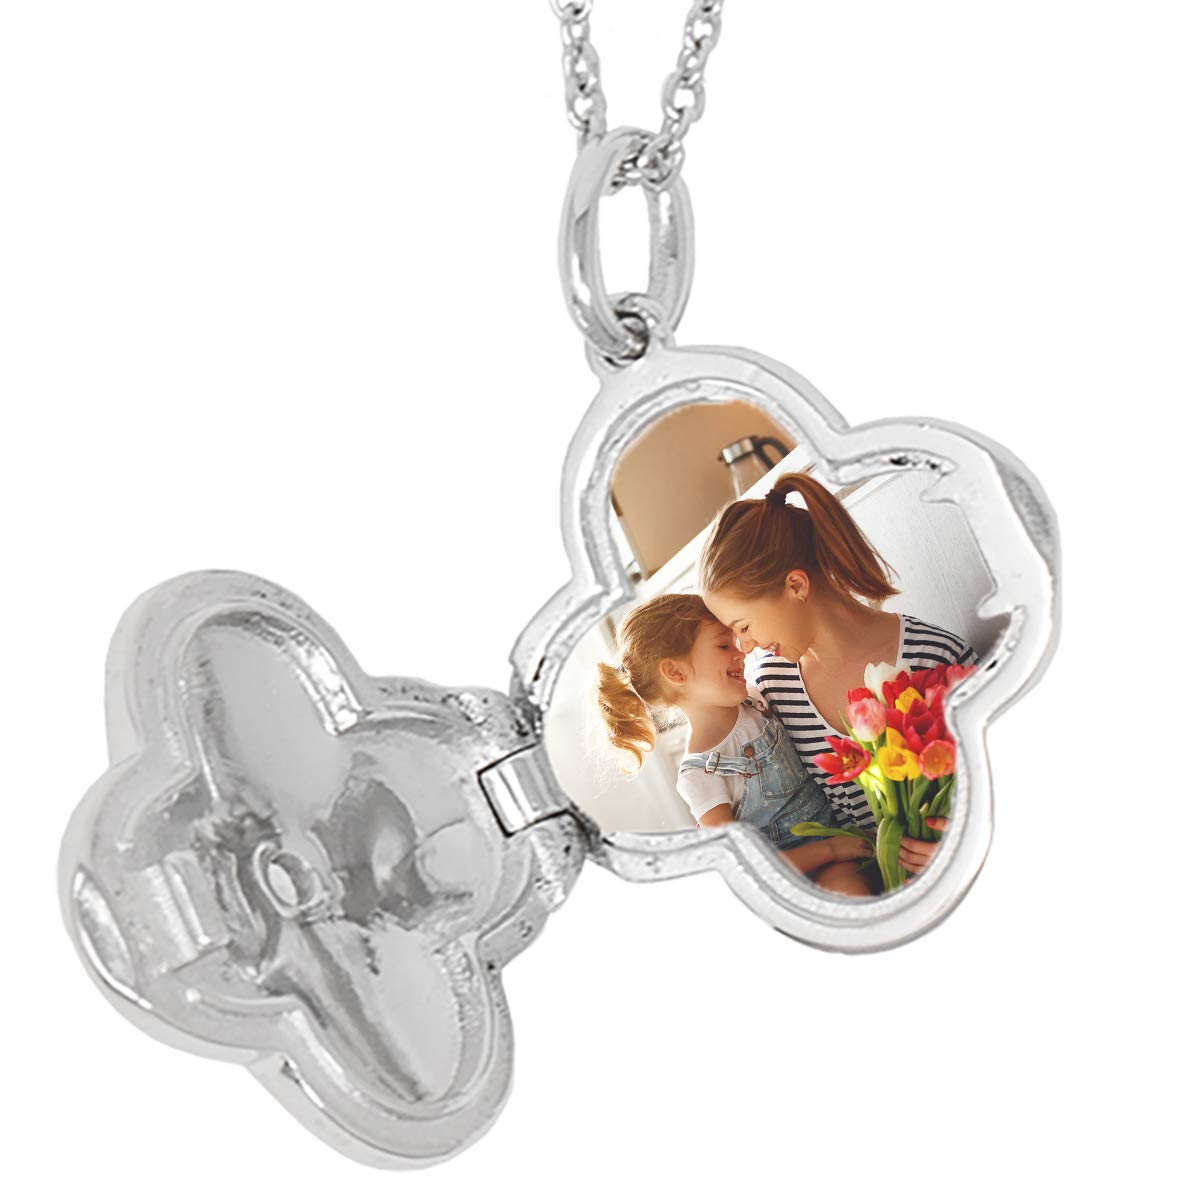 With You Lockets-Custom Photo Locket Necklace-That Holds Pictures for Girls-I Love You More-The Calla